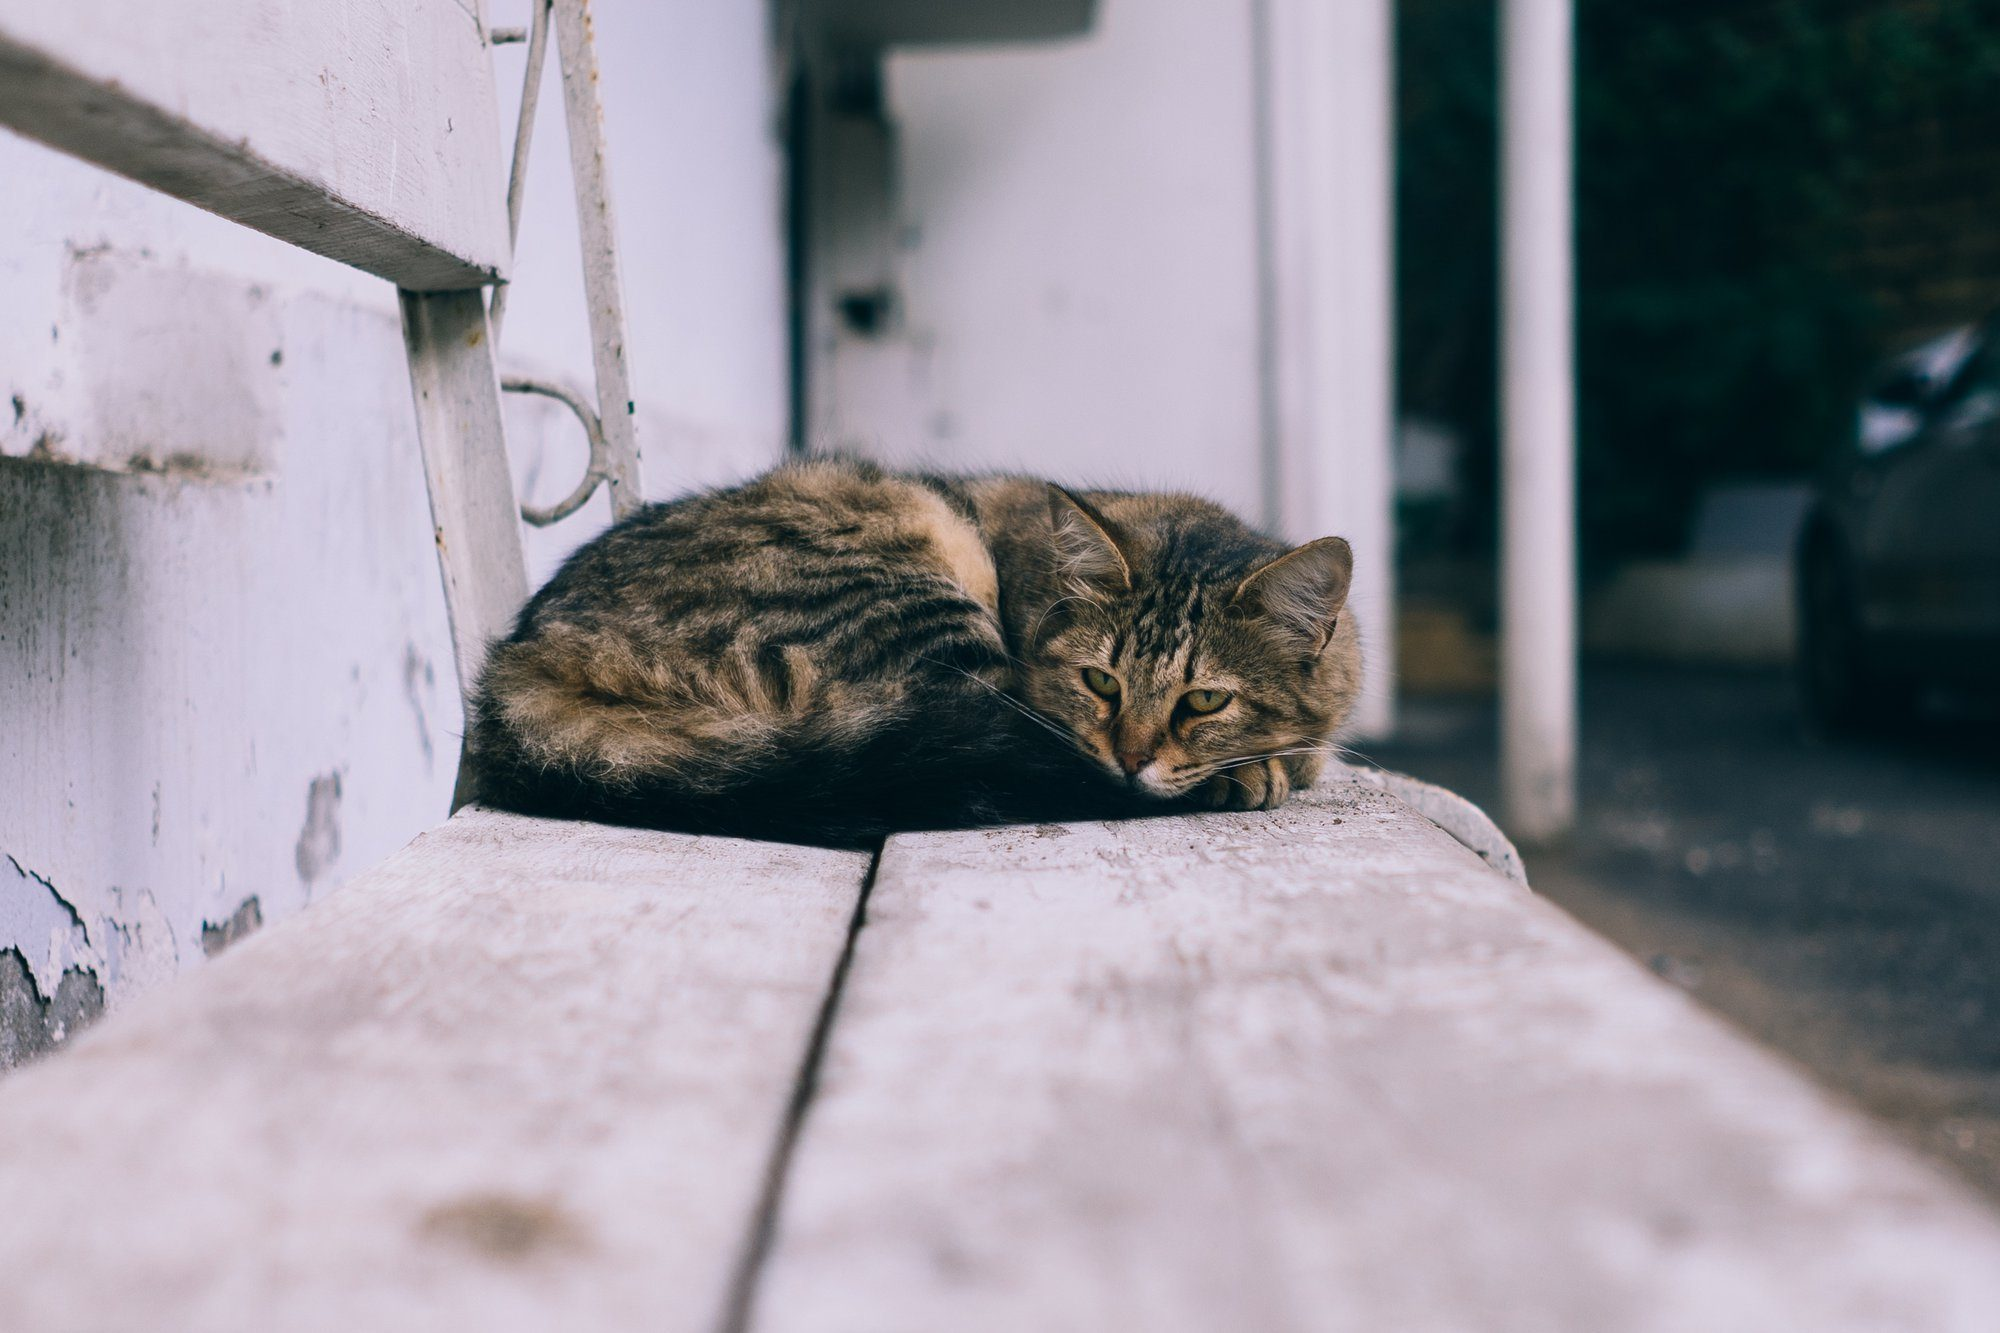 Free-Roaming Felines: How You Can Help a Community or Feral Cat